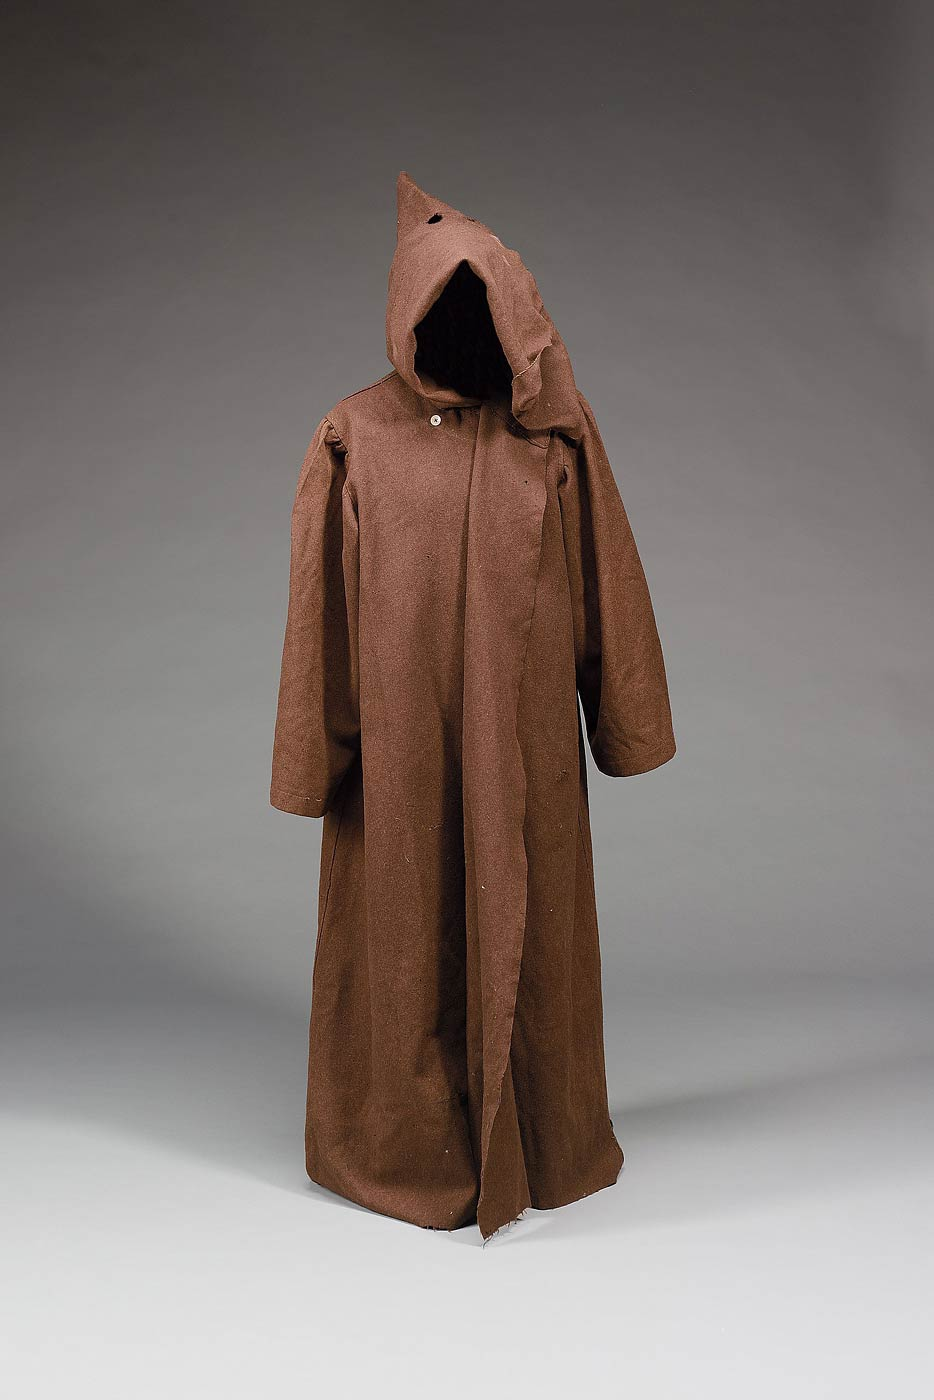 Alec Guinness' Obi Wan Kenobi costume from Star Wars